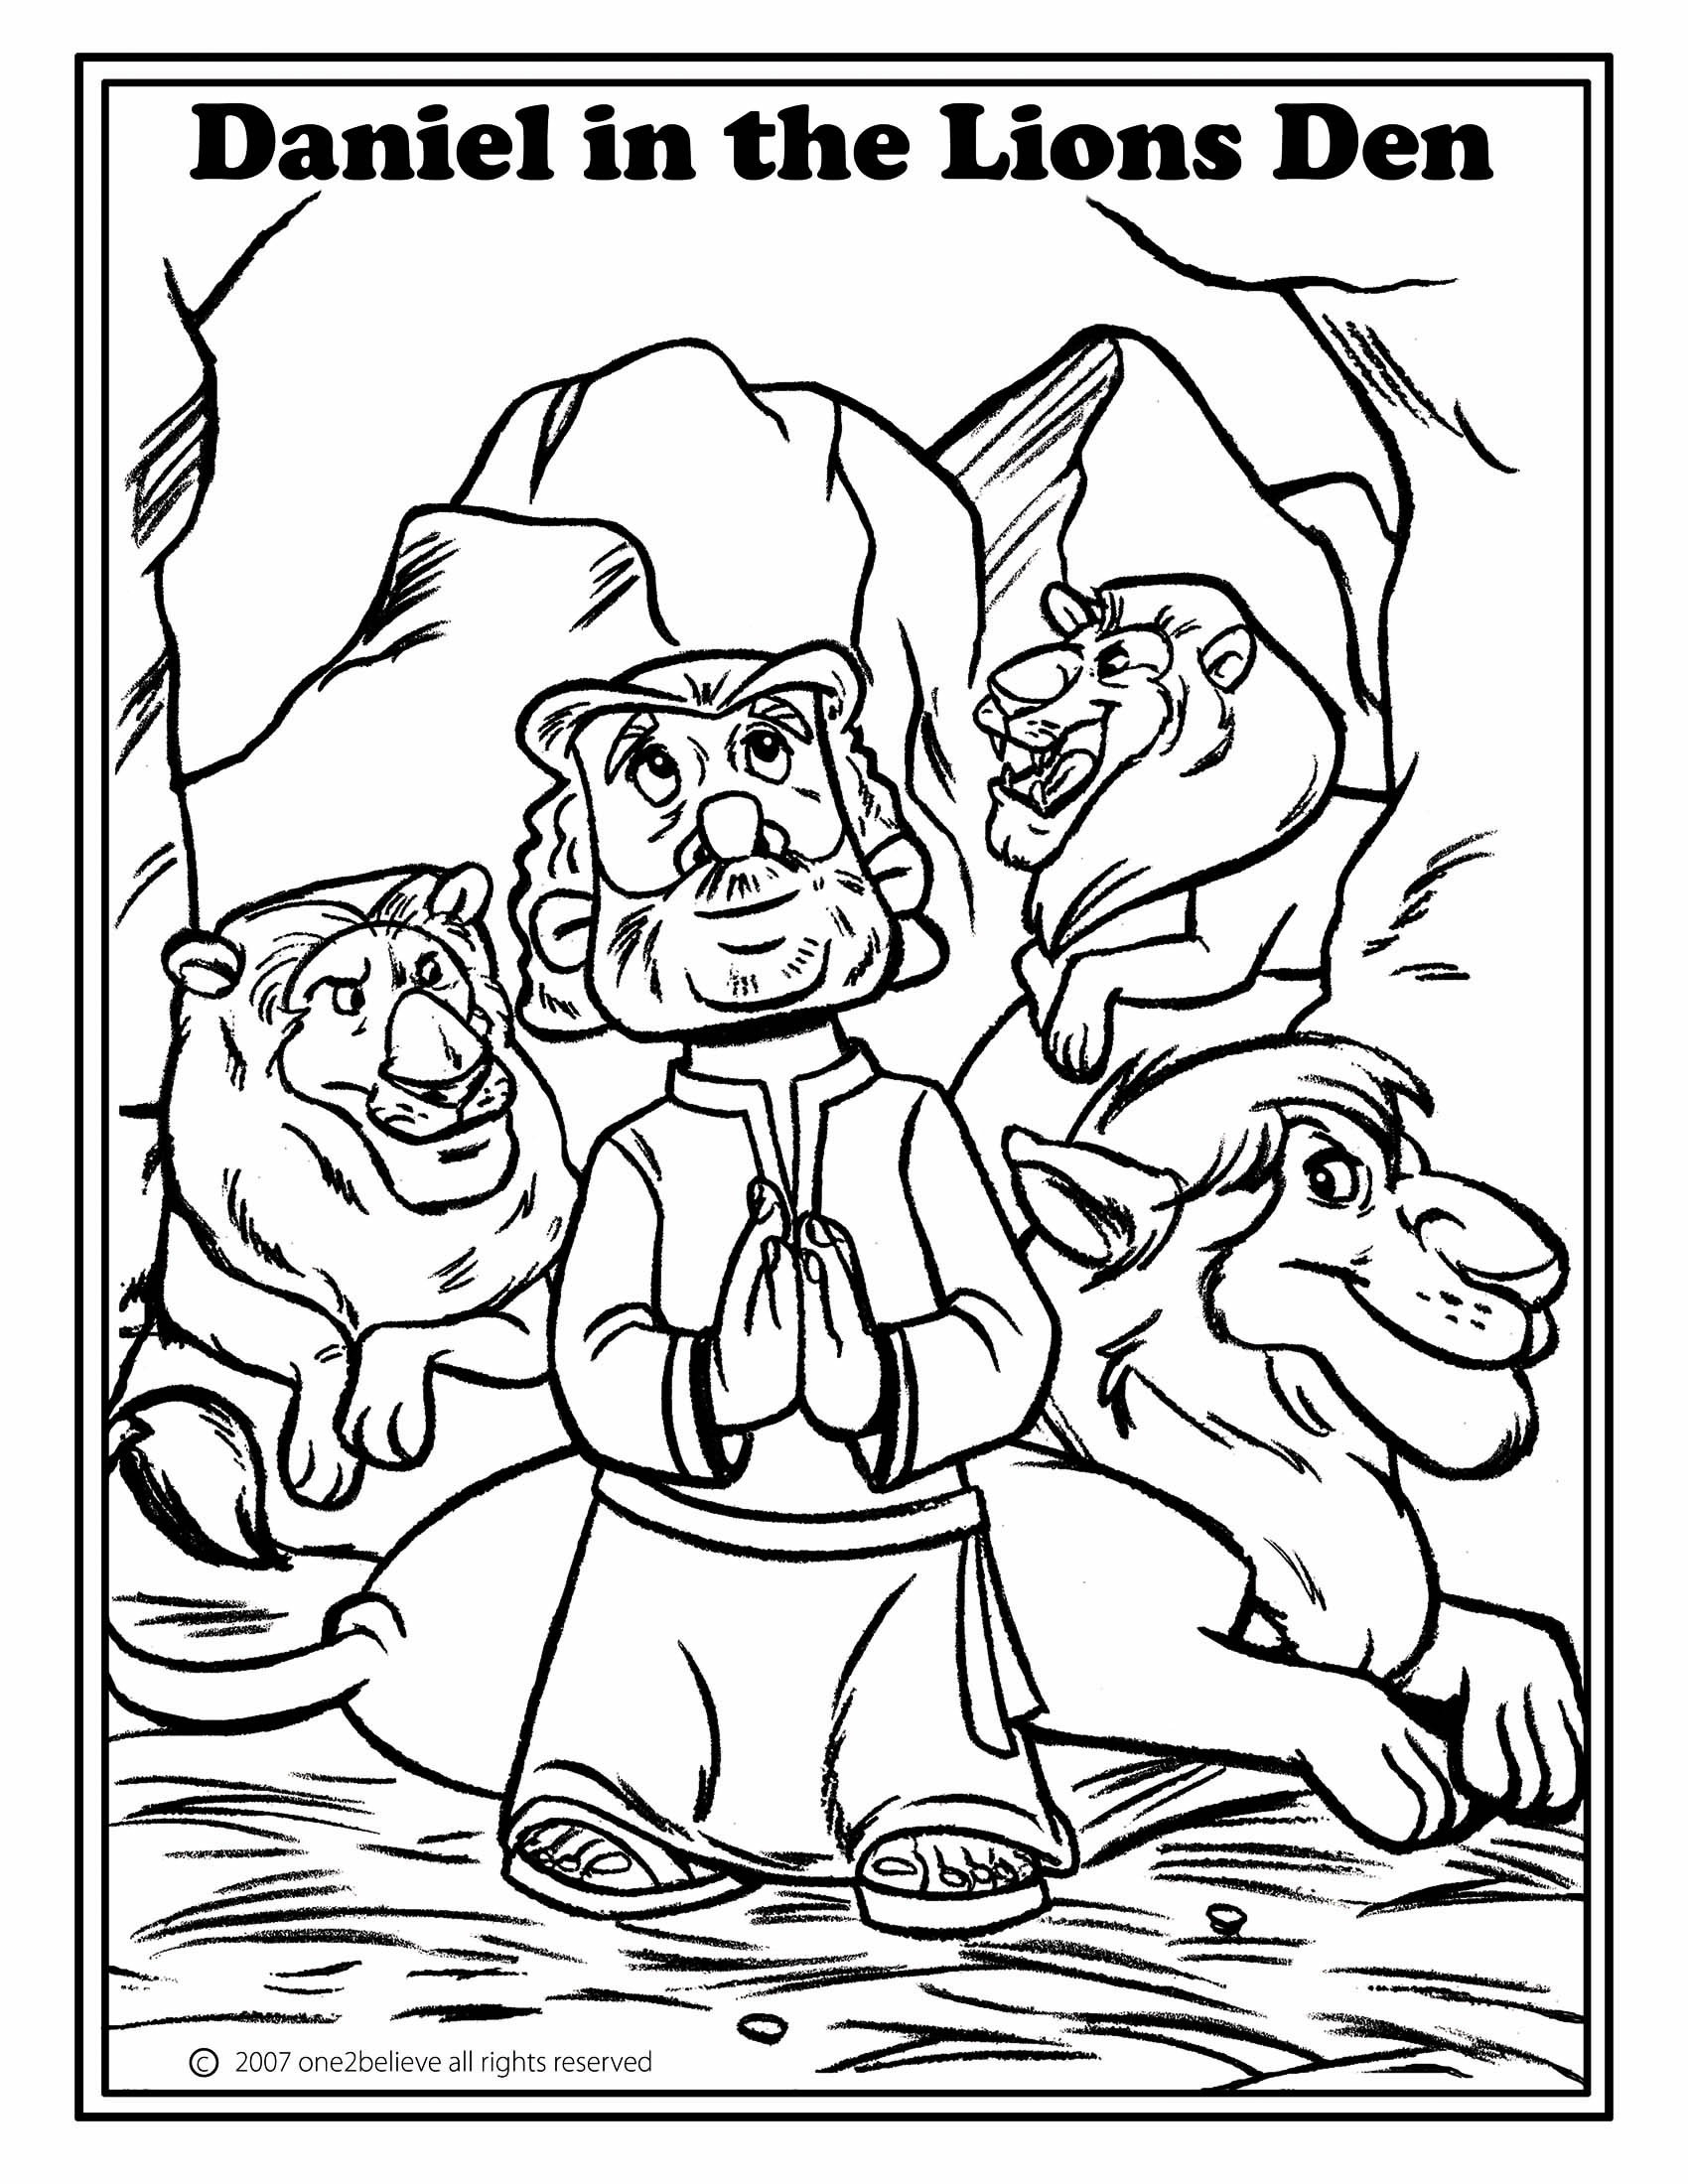 Bible Story Coloring Pages Gospel Light  Printable 4f - To print for your project